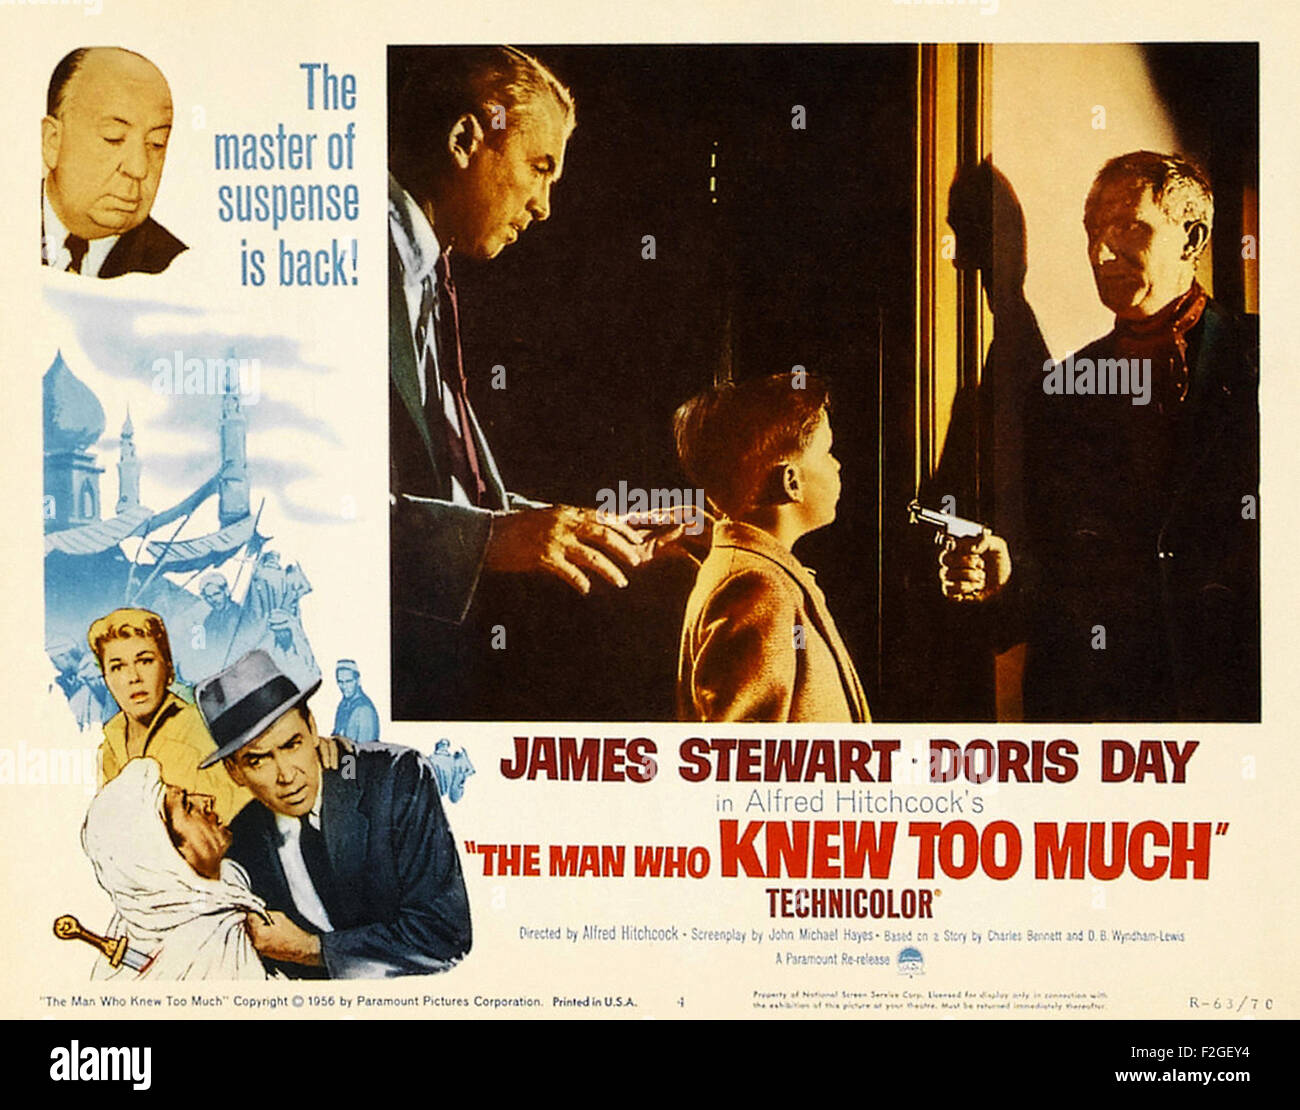 Man Who Knew Too Much, The (1956) 11 - Movie Poster - Stock Image